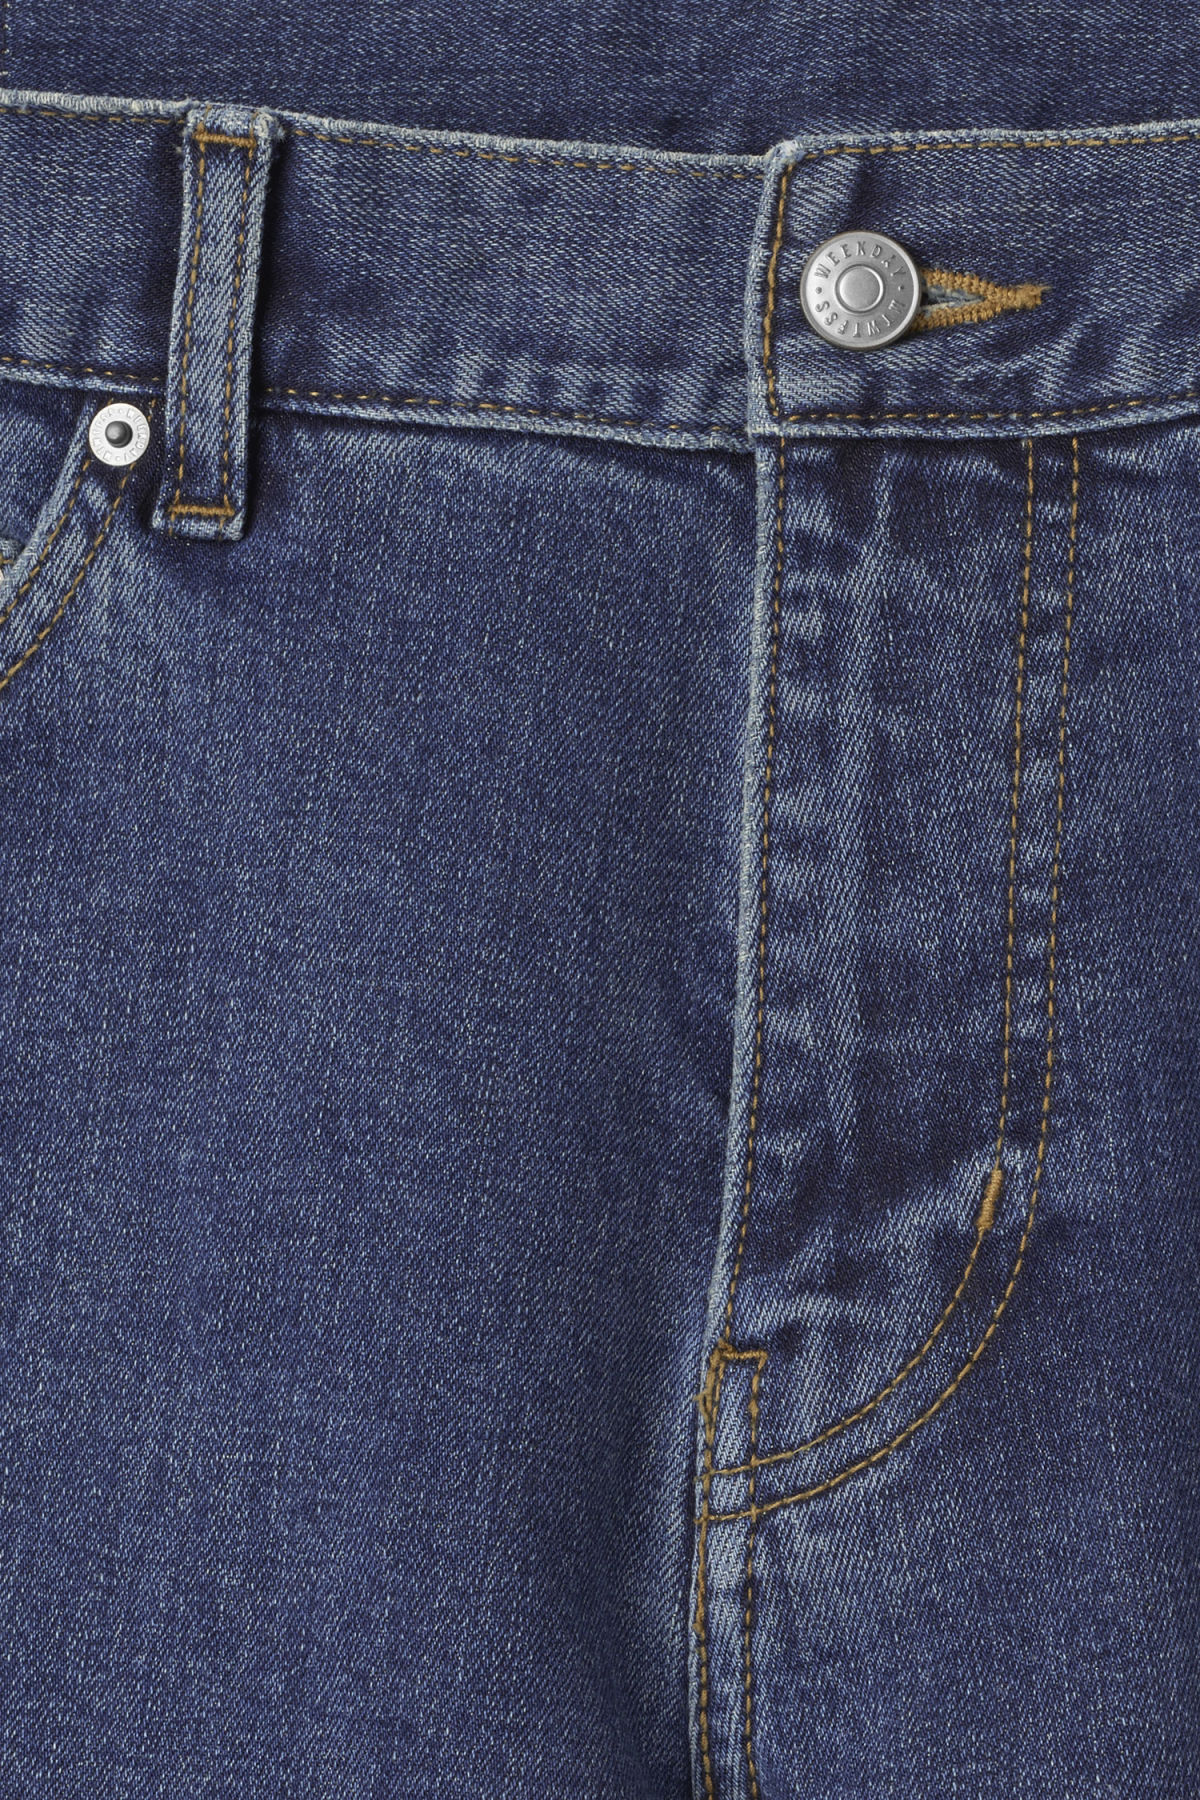 Detailed image of Weekday friday mid standard jeans in blue